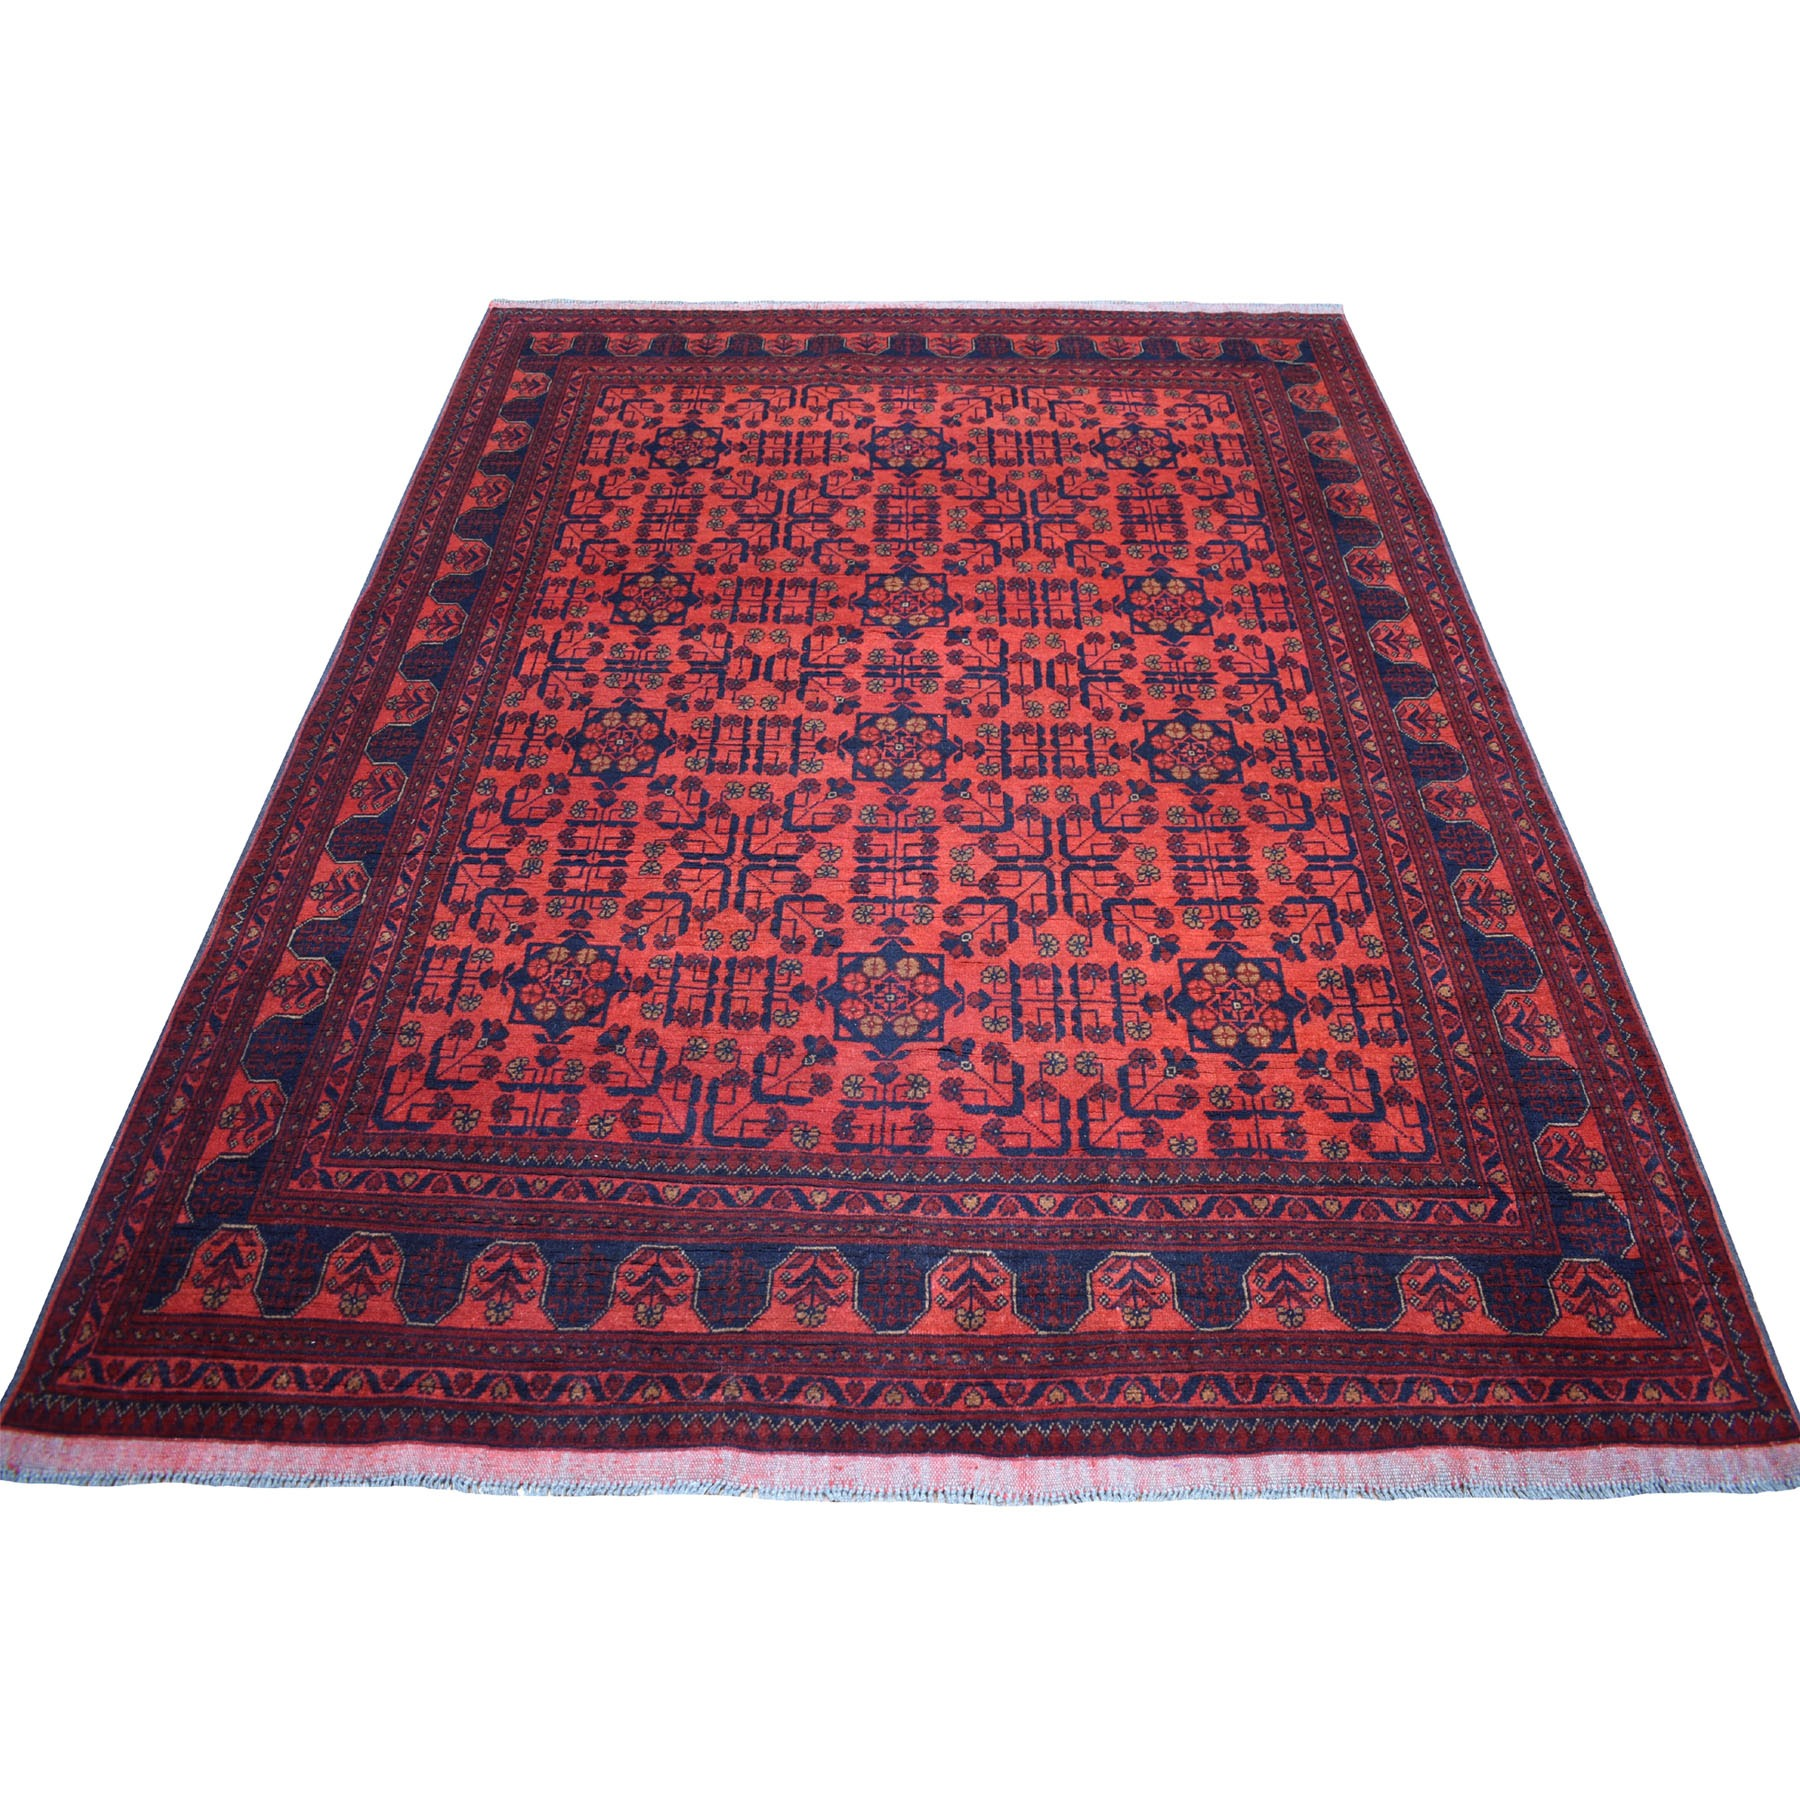 "5'10""X7'7"" Deep And Saturated Red Geometric Afghan Andkhoy Pure Wool Hand Knotted Oriental Rug moaec689"